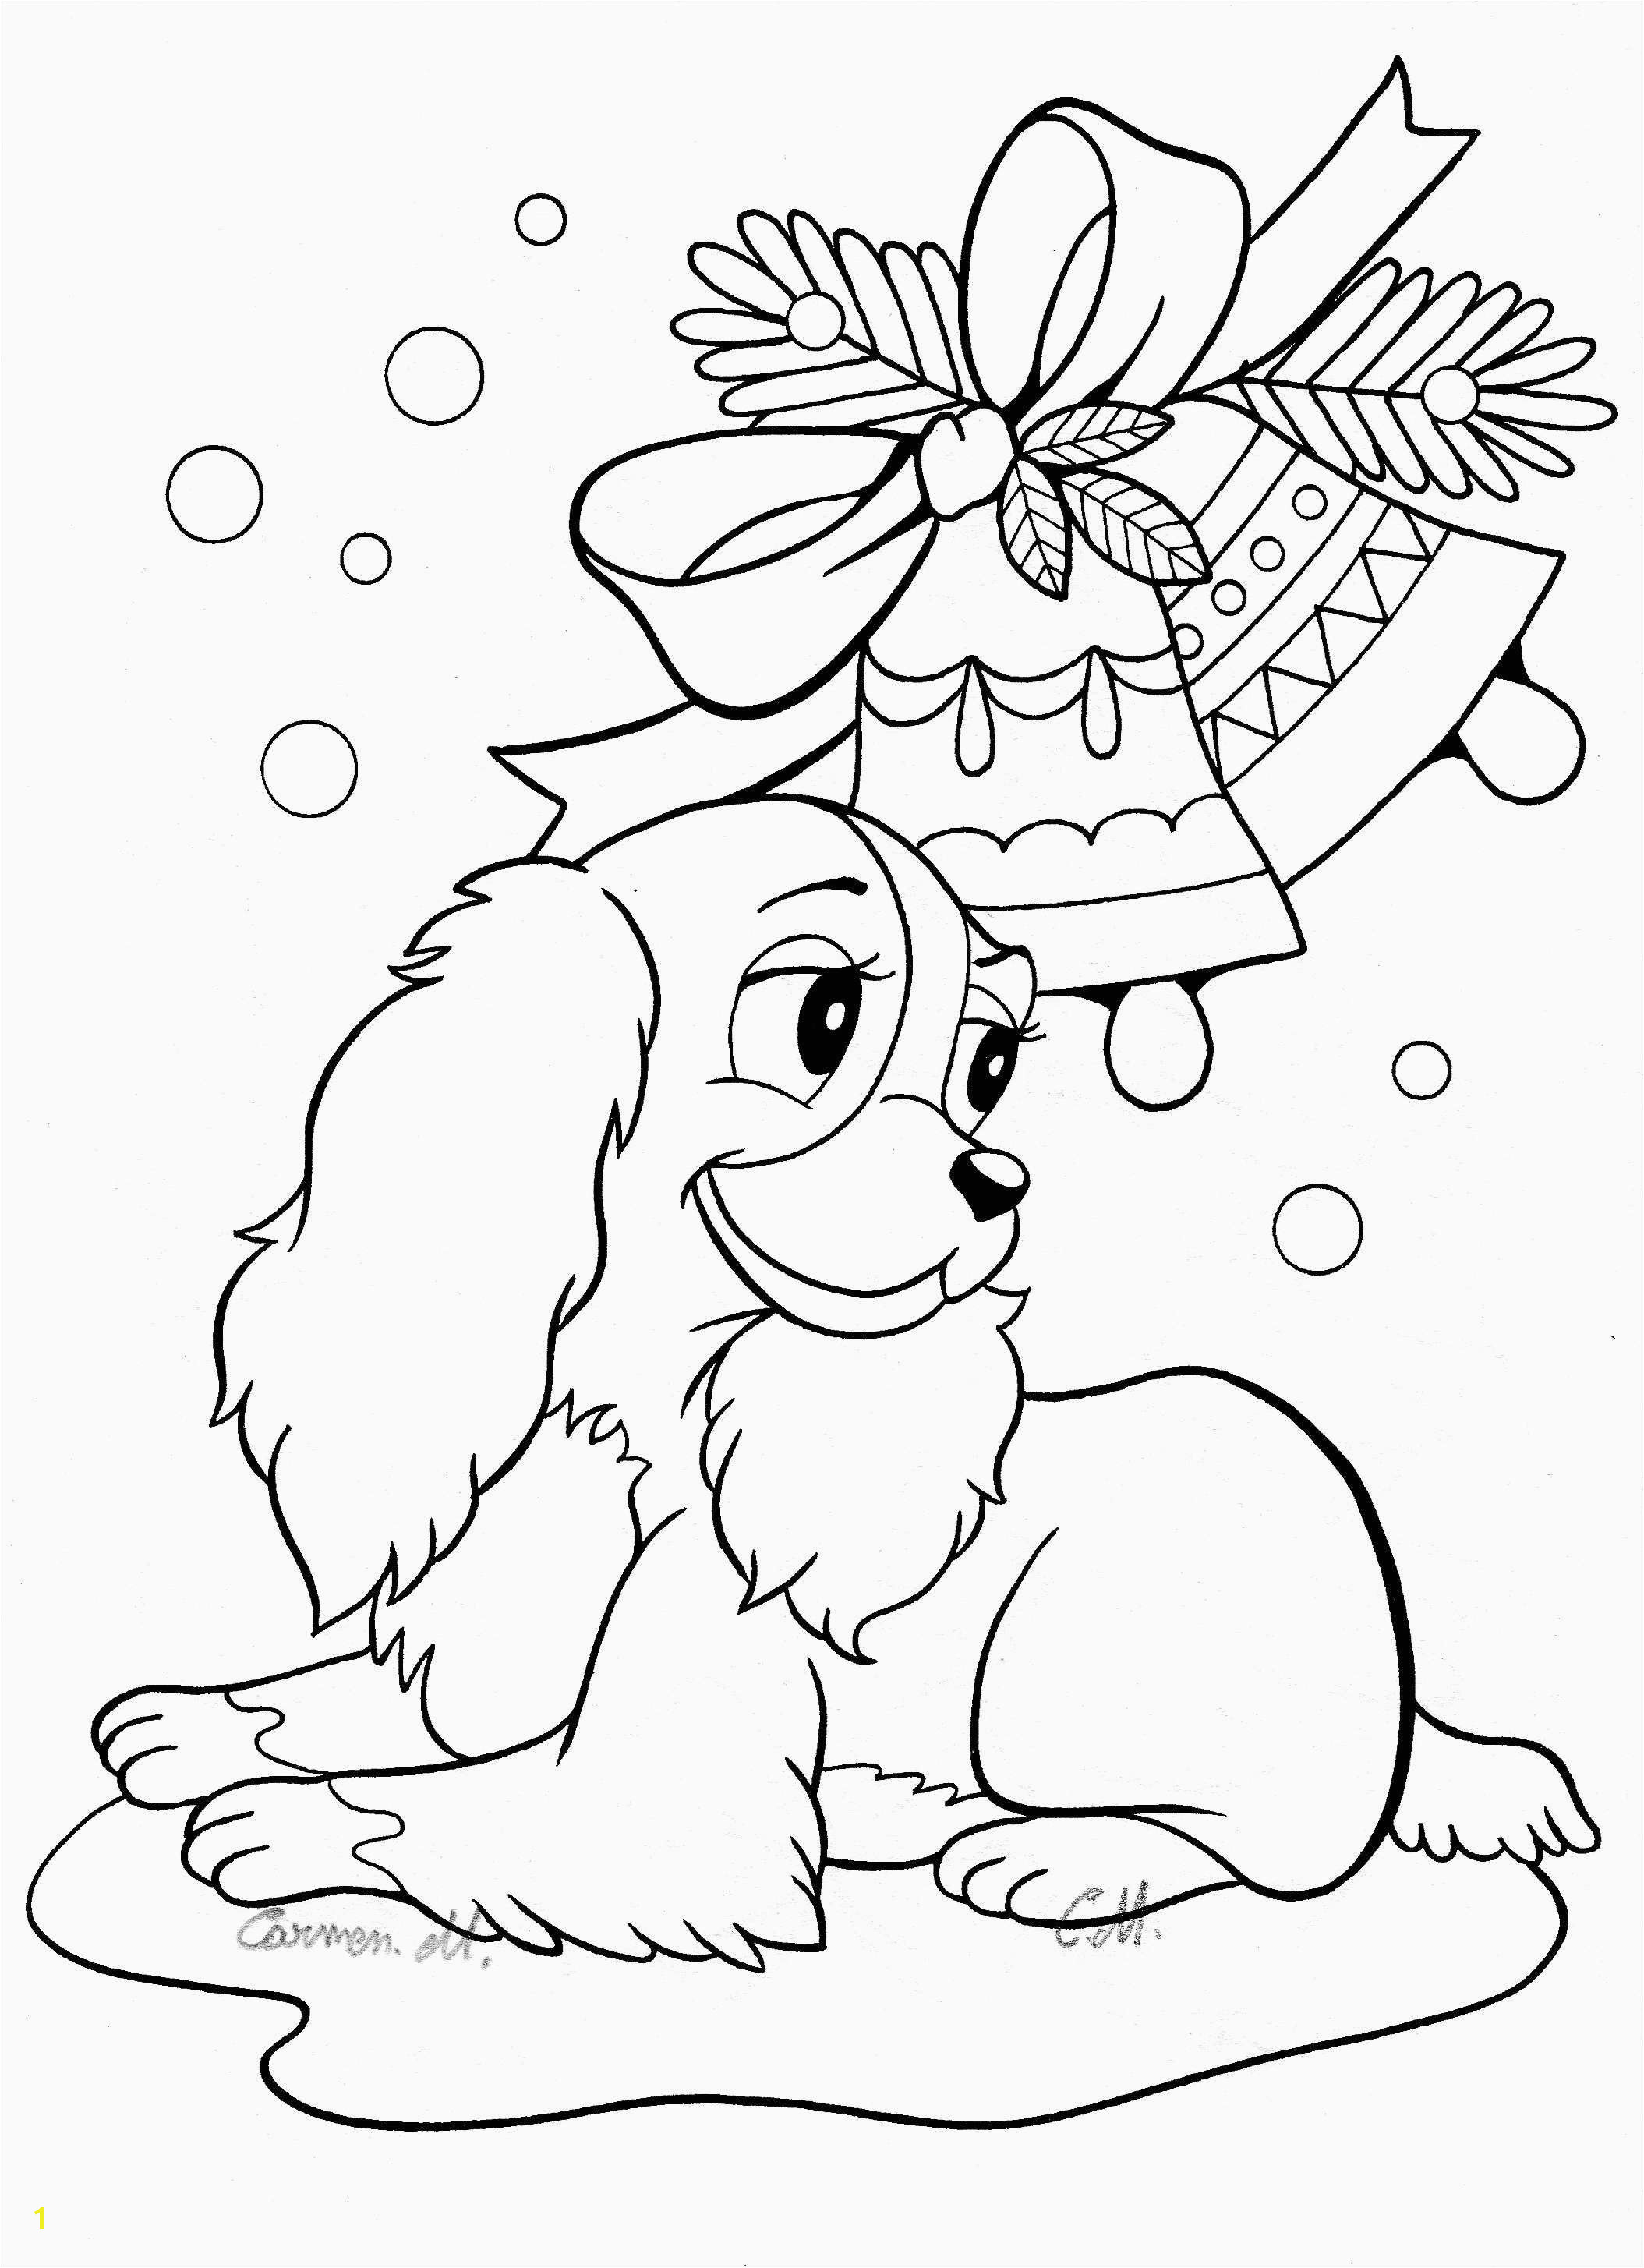 cute coloring pages to print 1s coloring pages cute animals unique printable od dog coloring pages